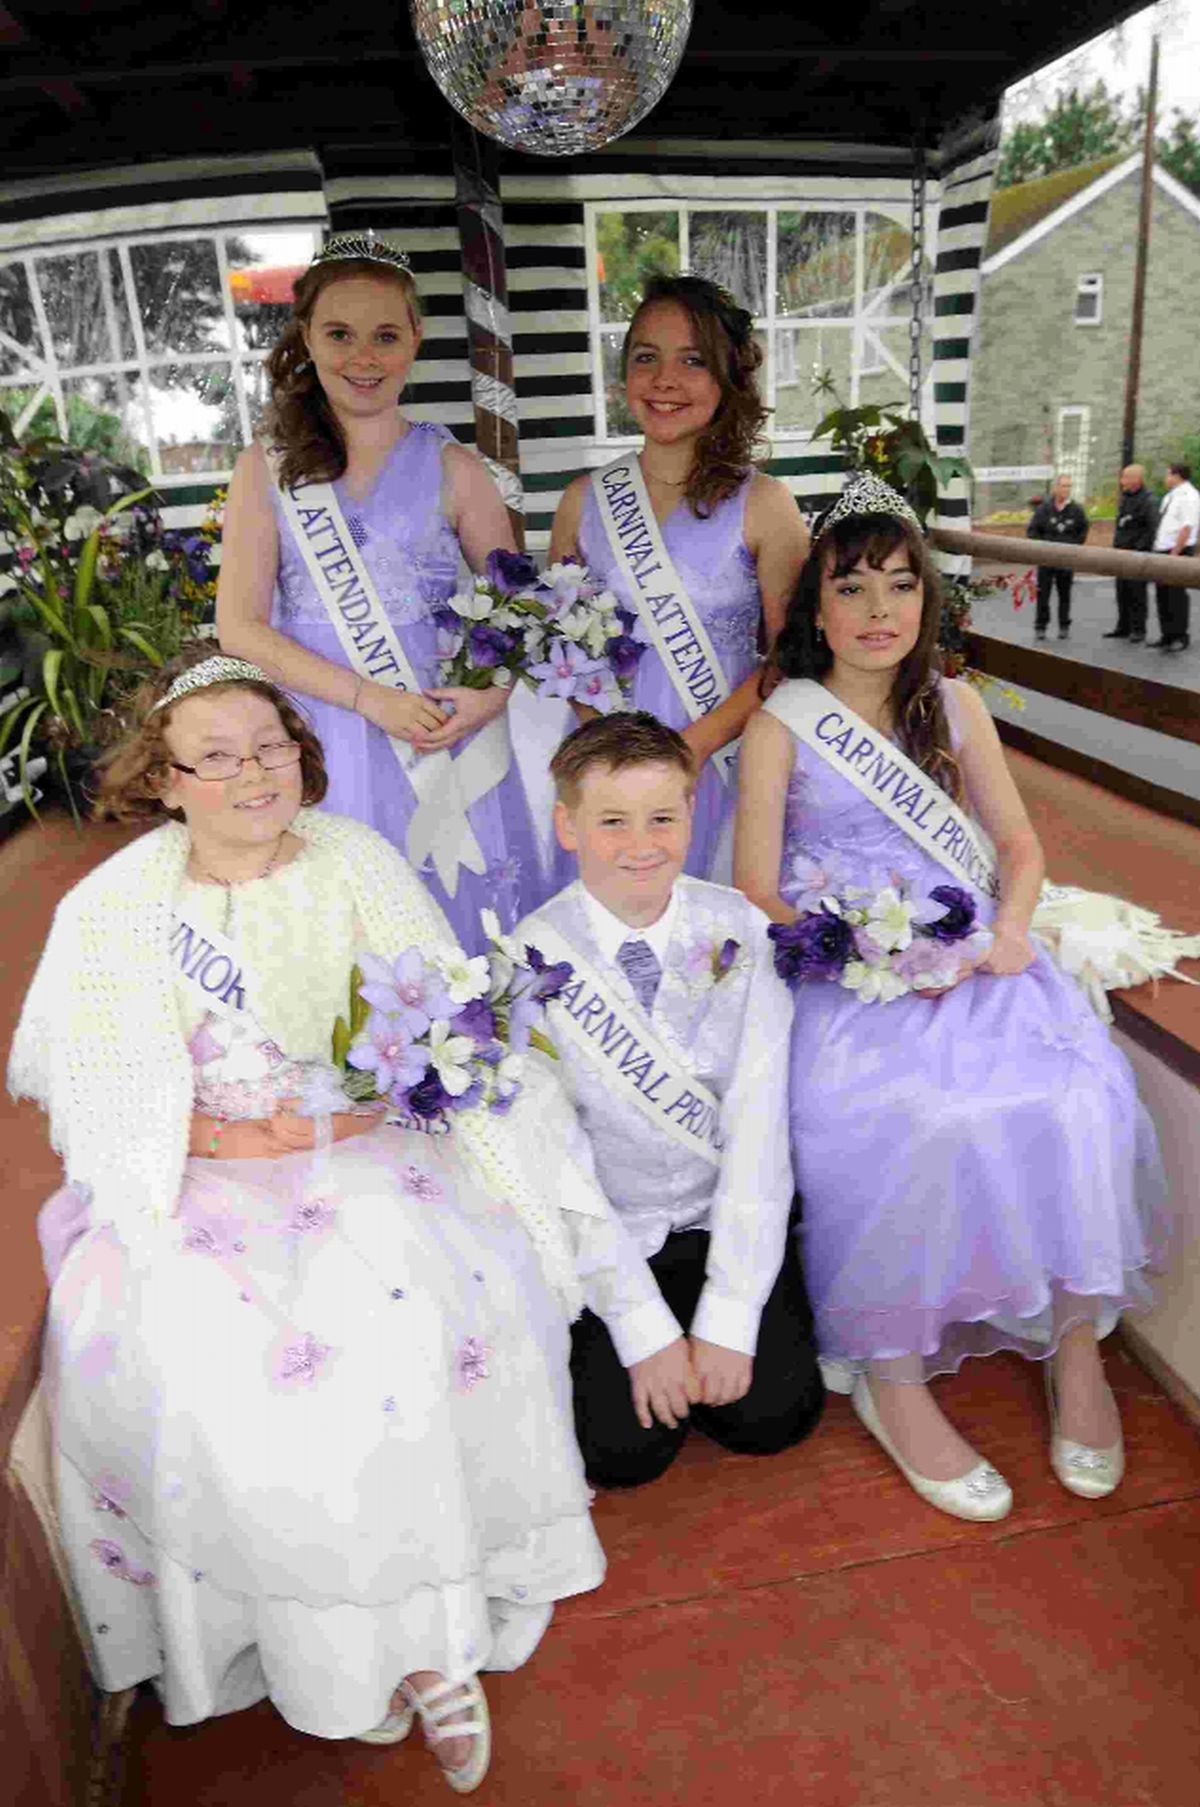 LAST YEAR'S ROYALTY: left to right, Jenniver Sweet, Sarah Williams, Aiden Cooper, Daniella Scadding and Chloe-Amber Cash